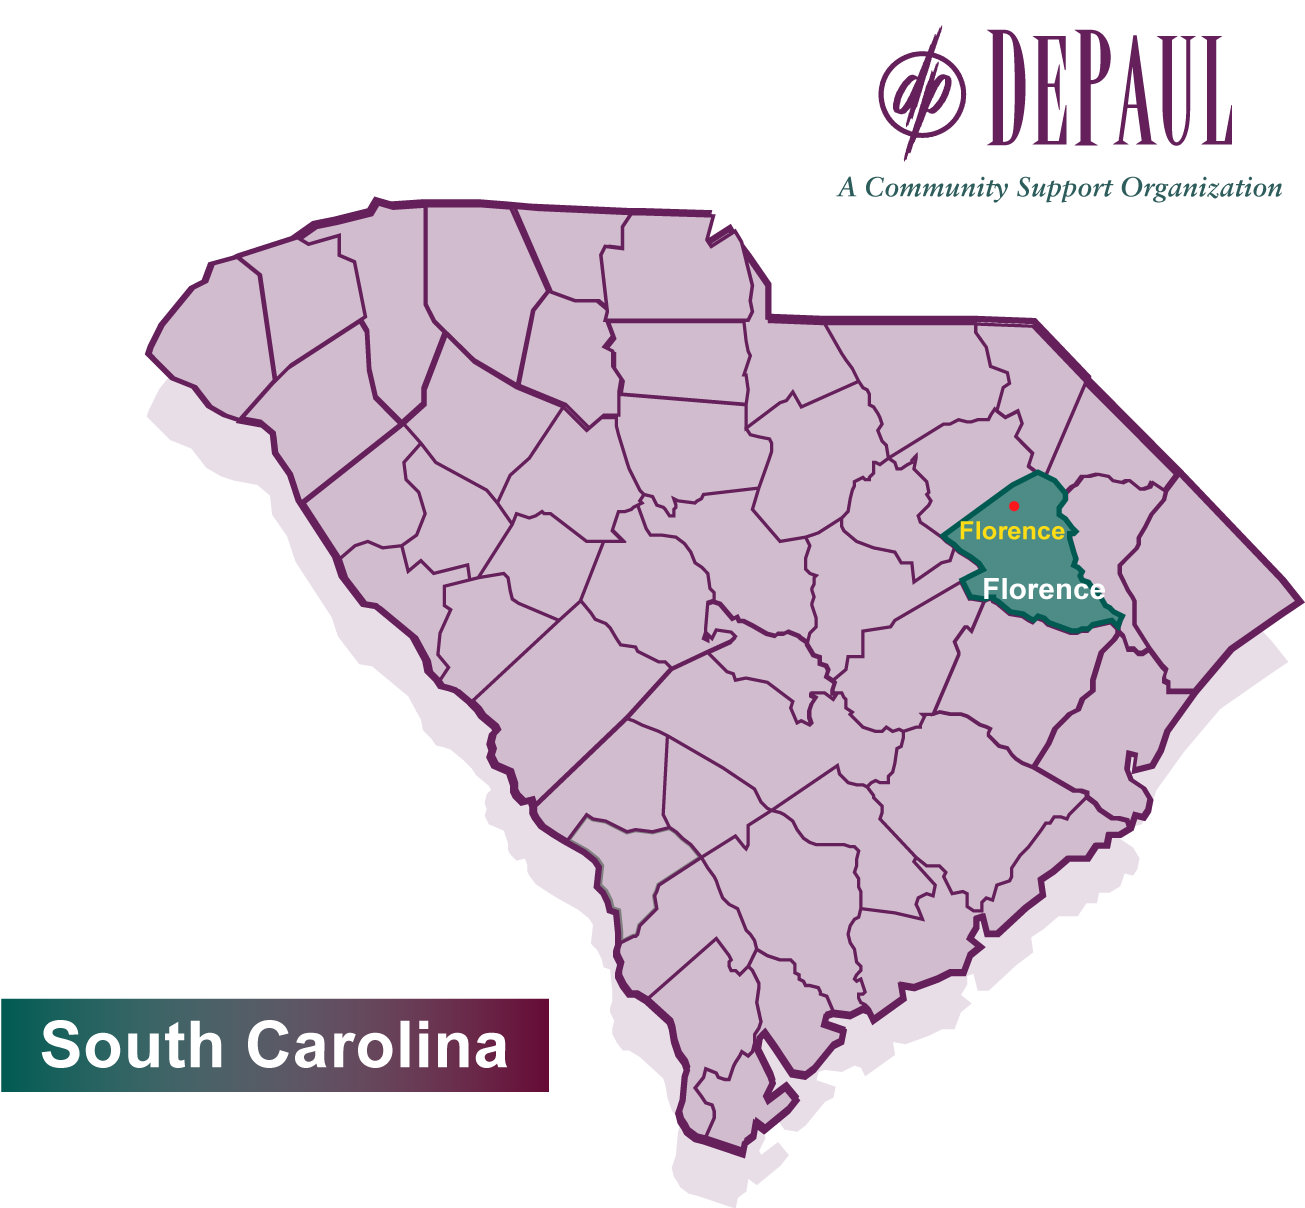 DePaul South Carolina Map 2016